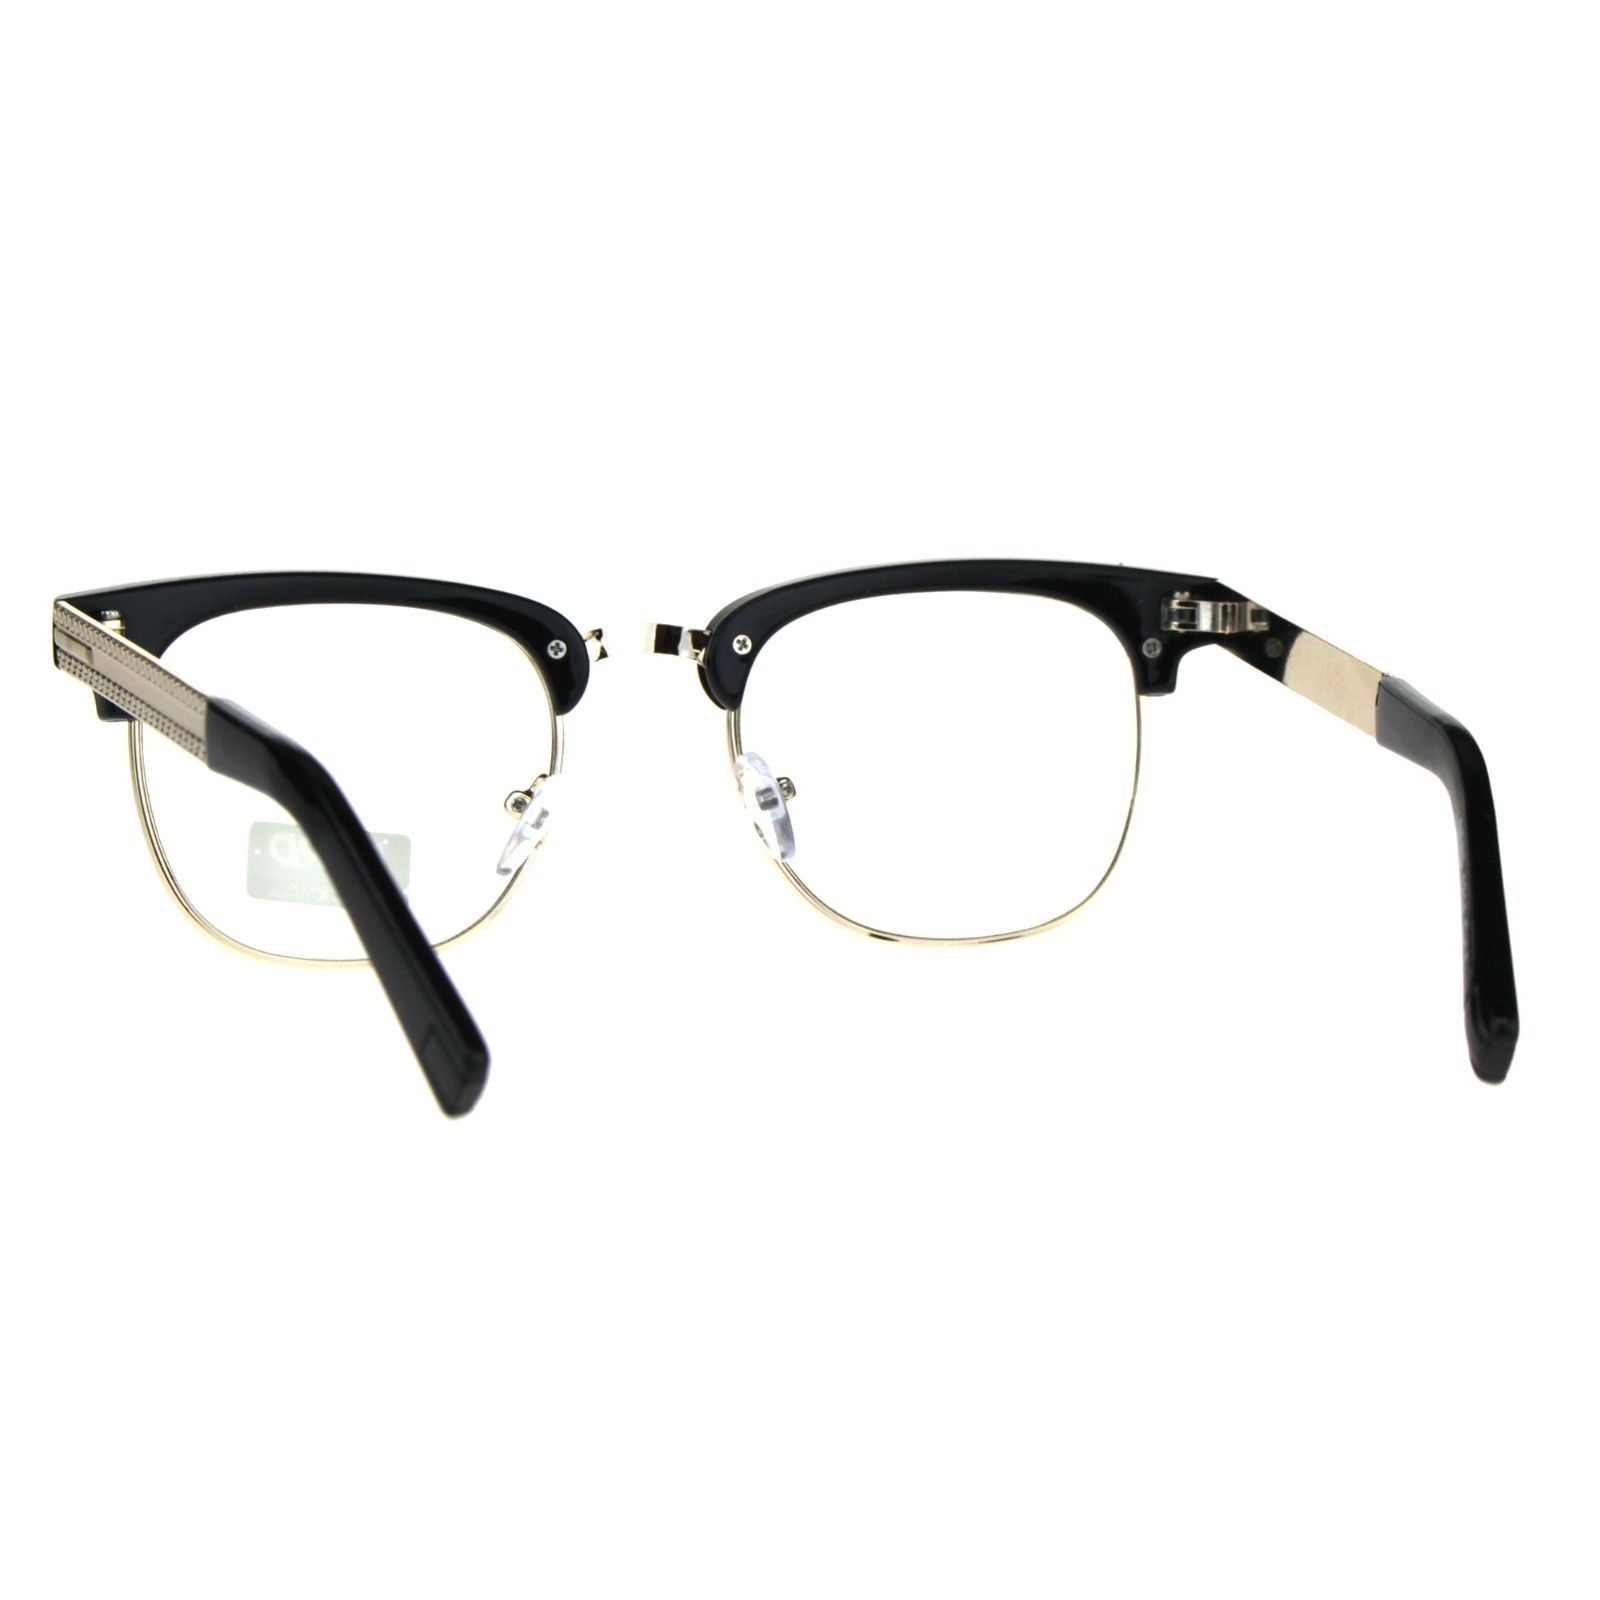 Designer Fashion Clear Lens Glasses Rhinestone Square Eyeglasses UV 400